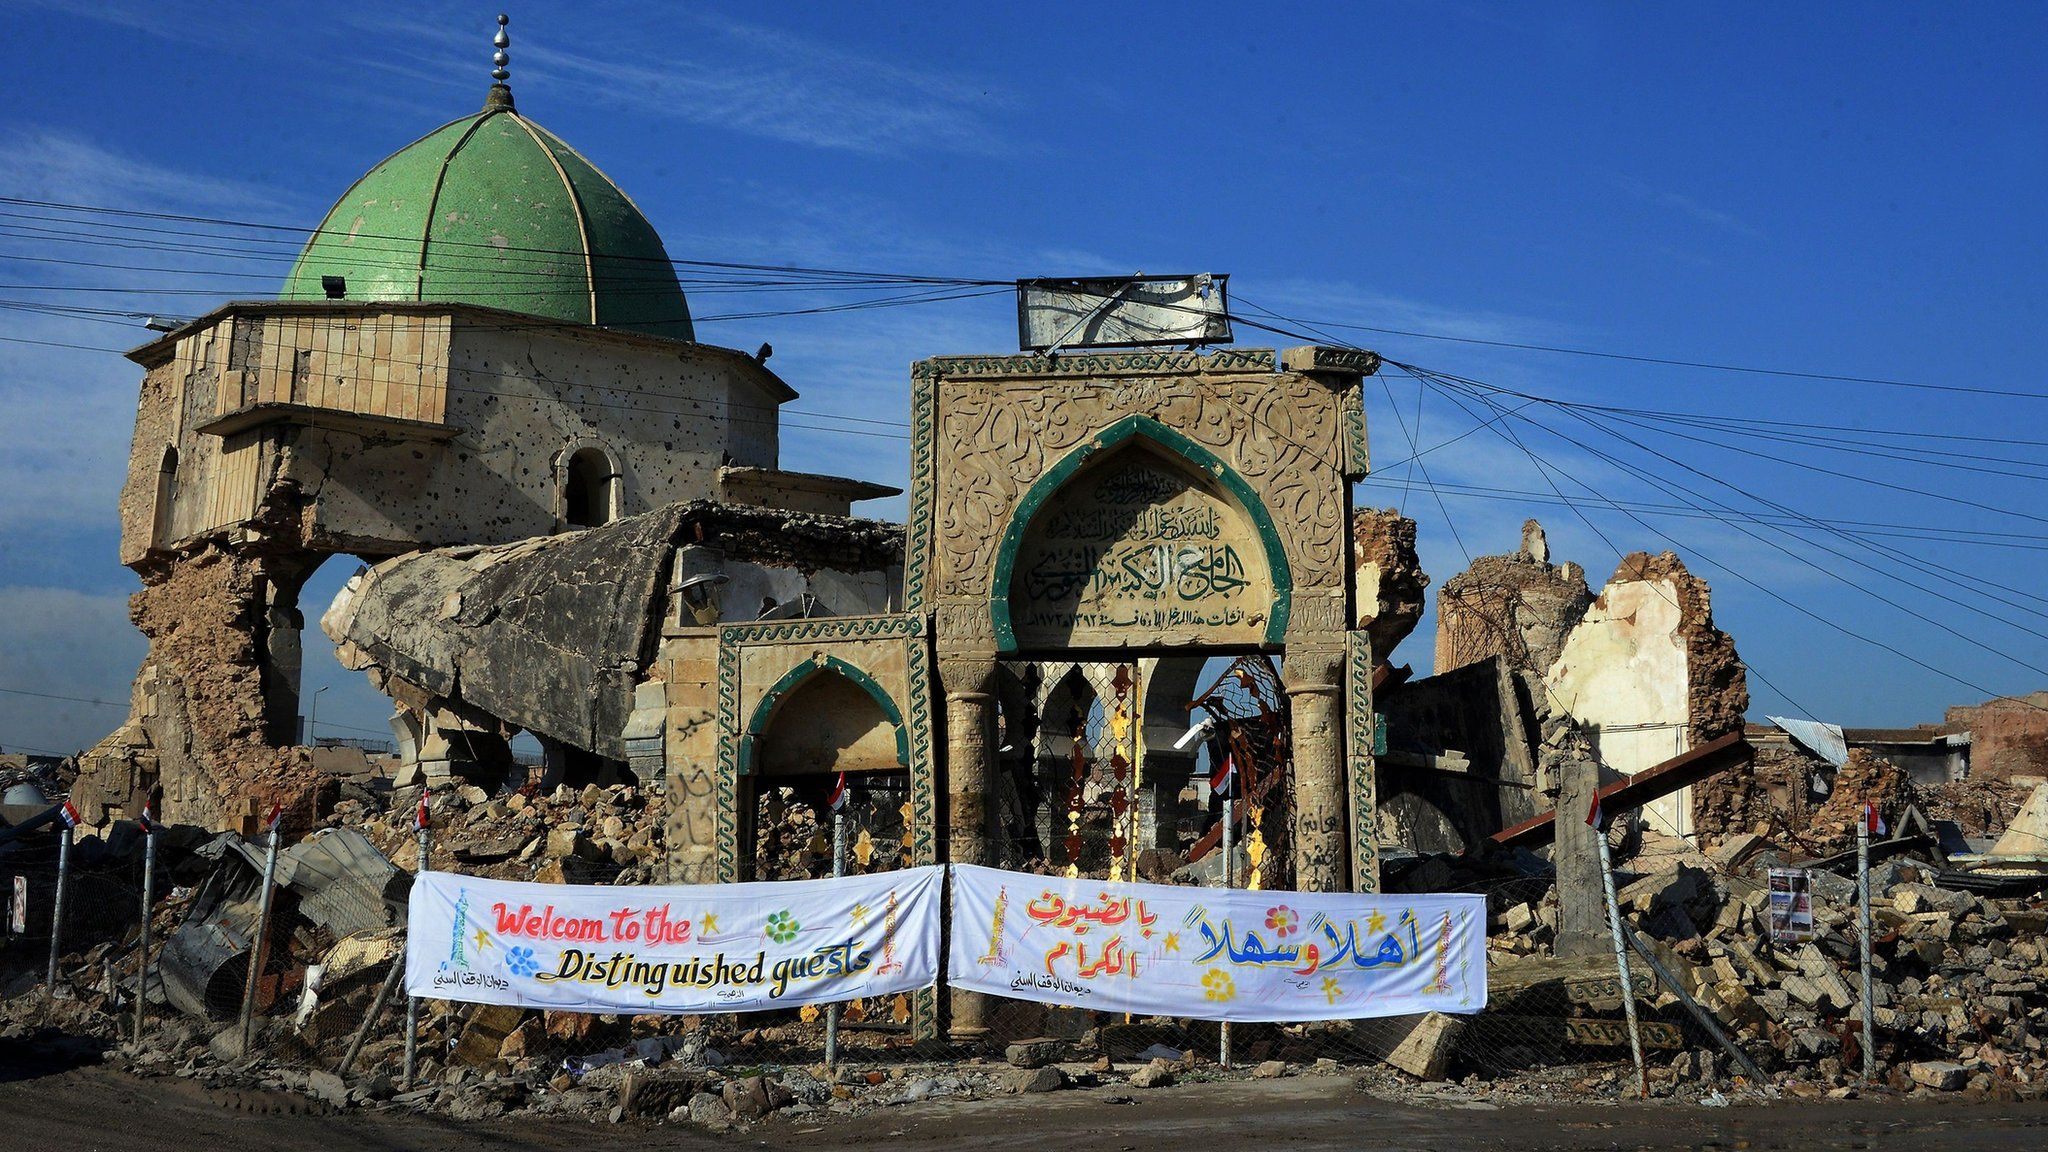 Remains of the Great Mosque of al-Nuri in Mosul, Iraq (16 December 2018)